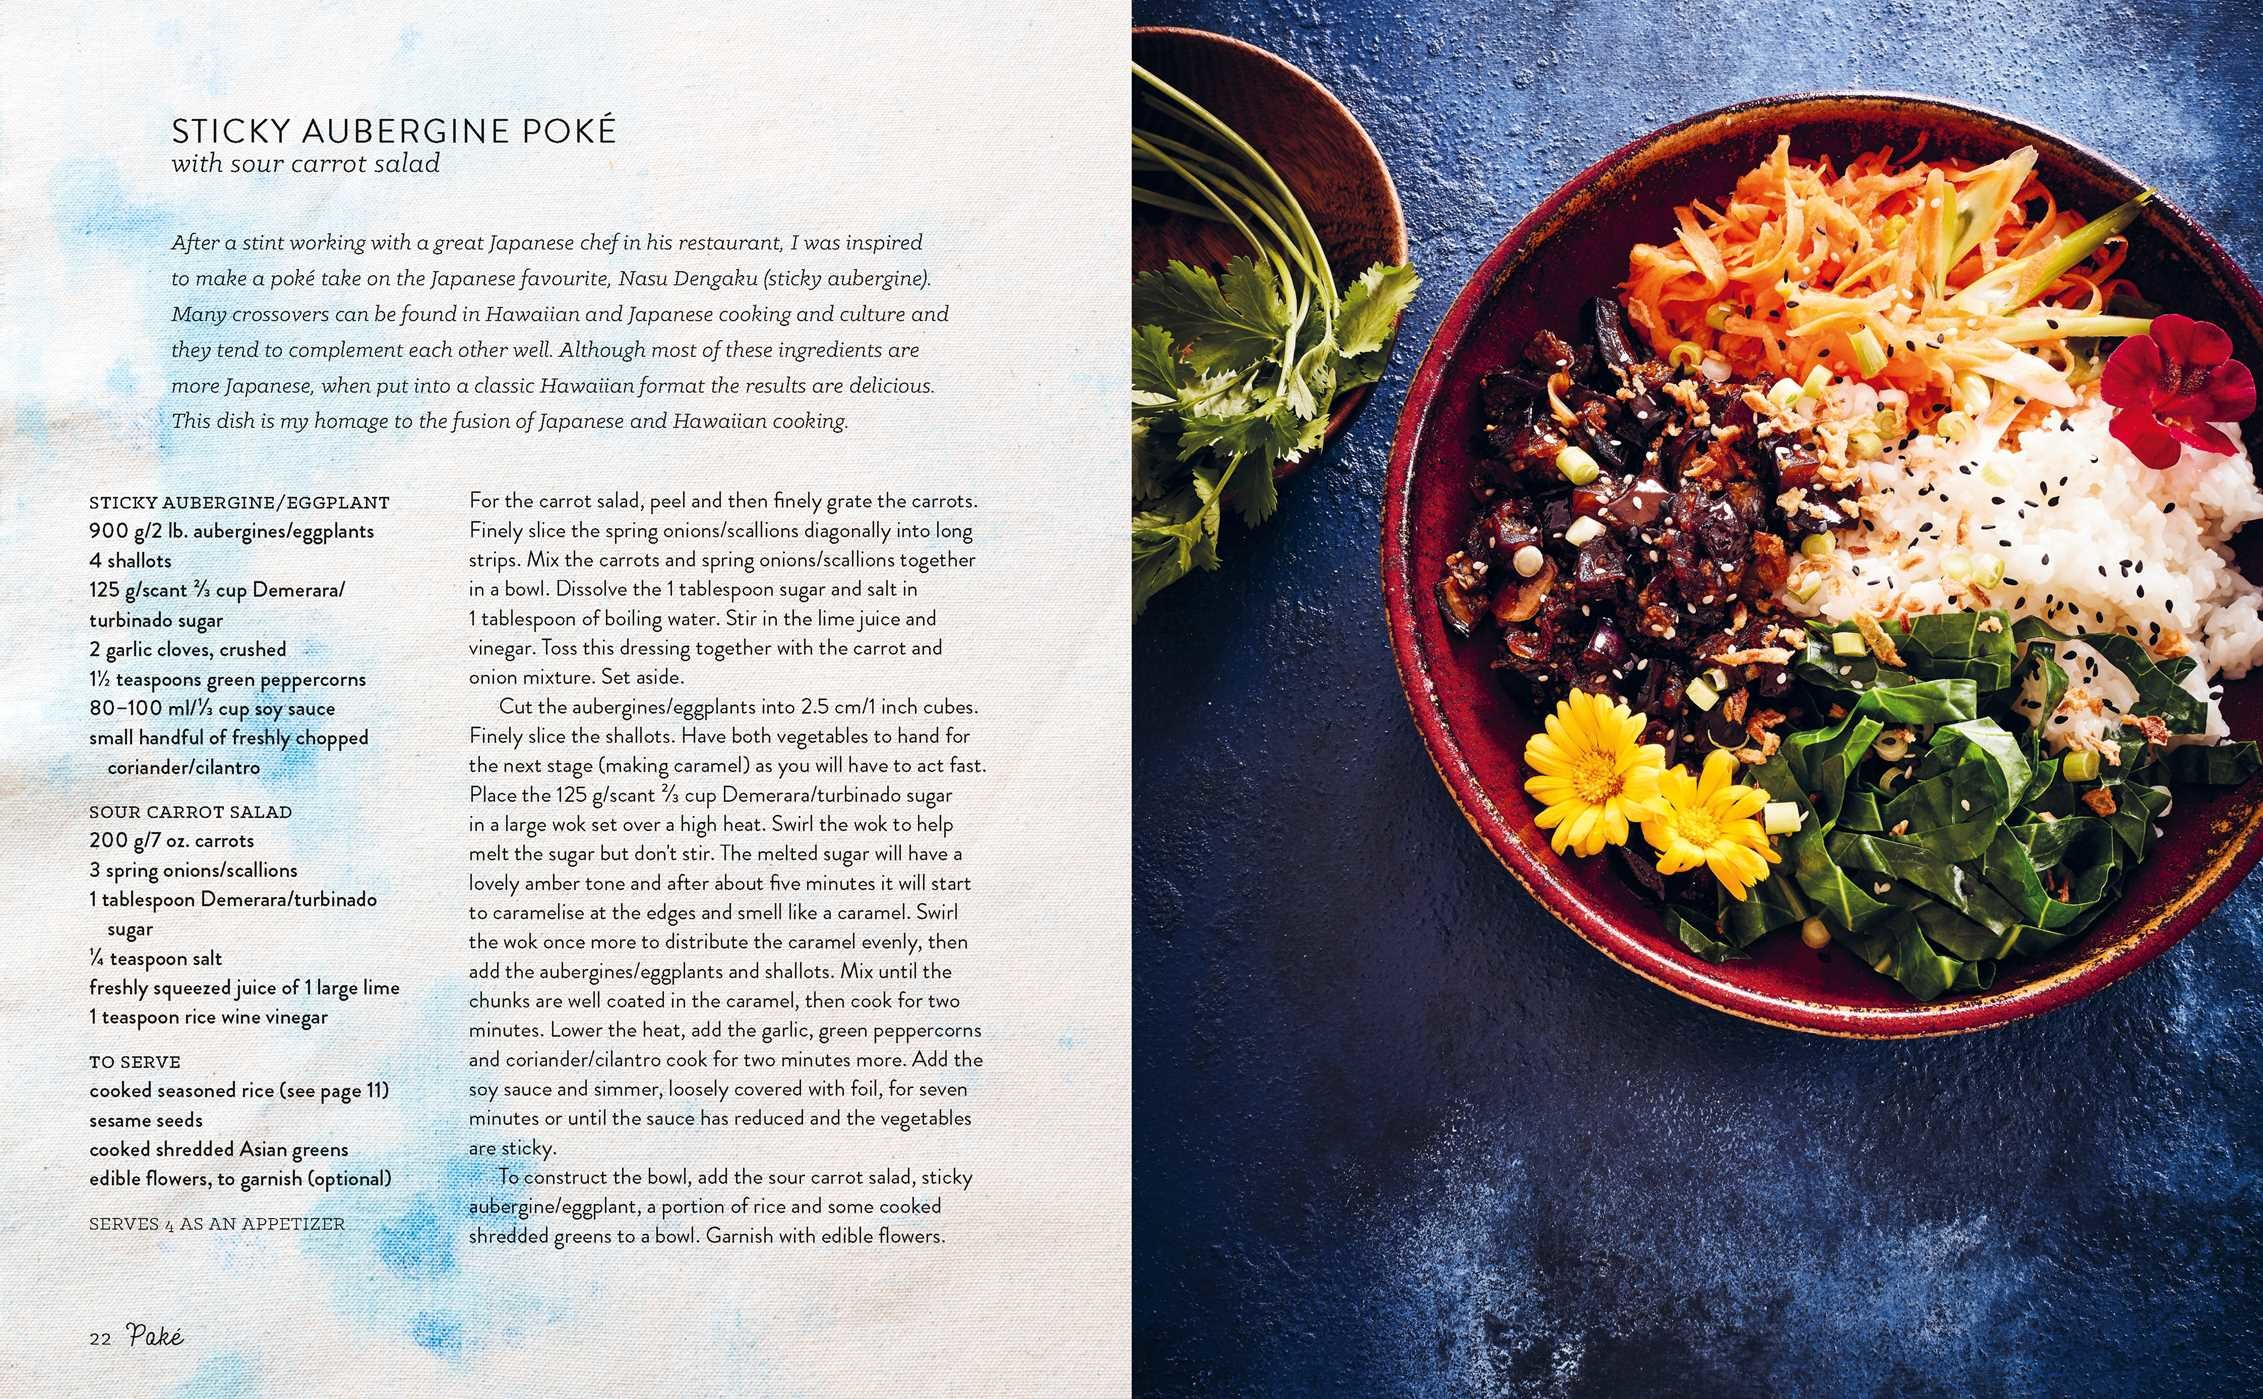 The island poke cookbook 9781849759687.in02